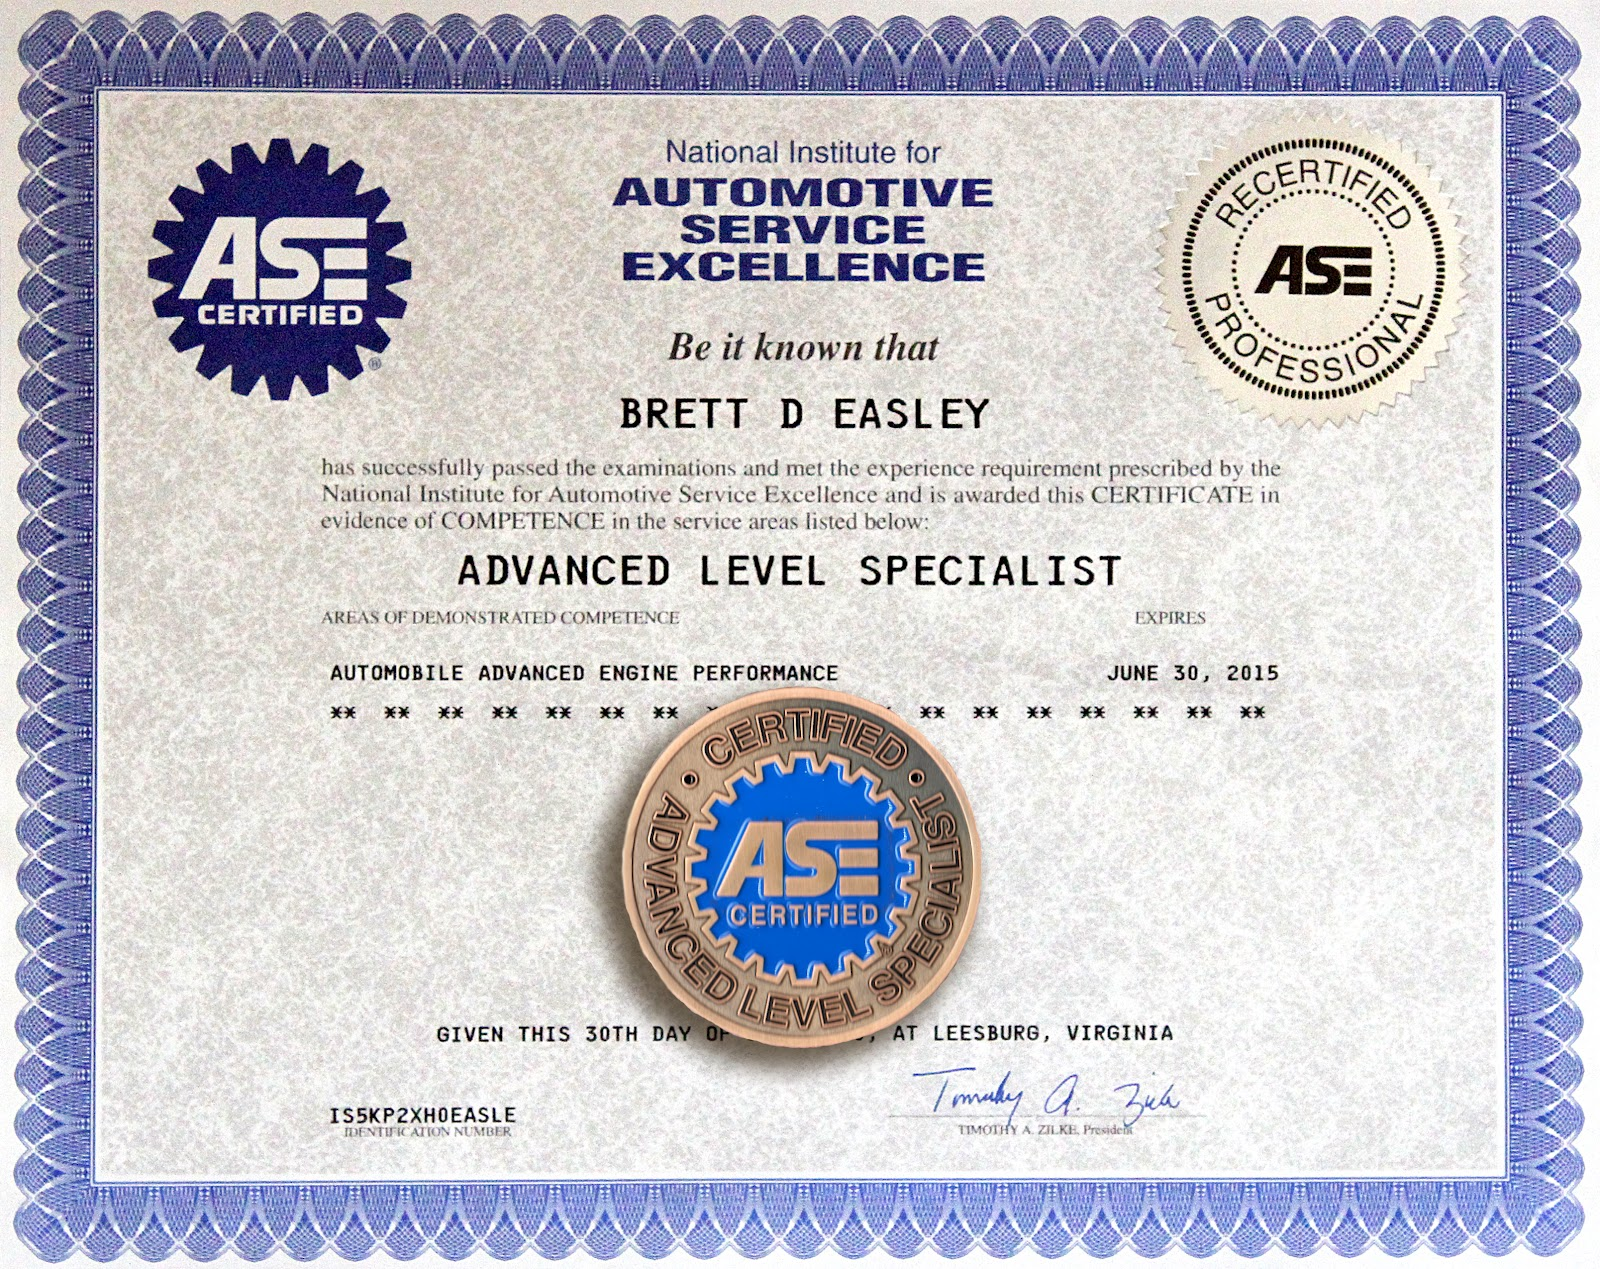 Blank ase certificate images reverse search ase certification certificate blank form pictures to pin xflitez Image collections